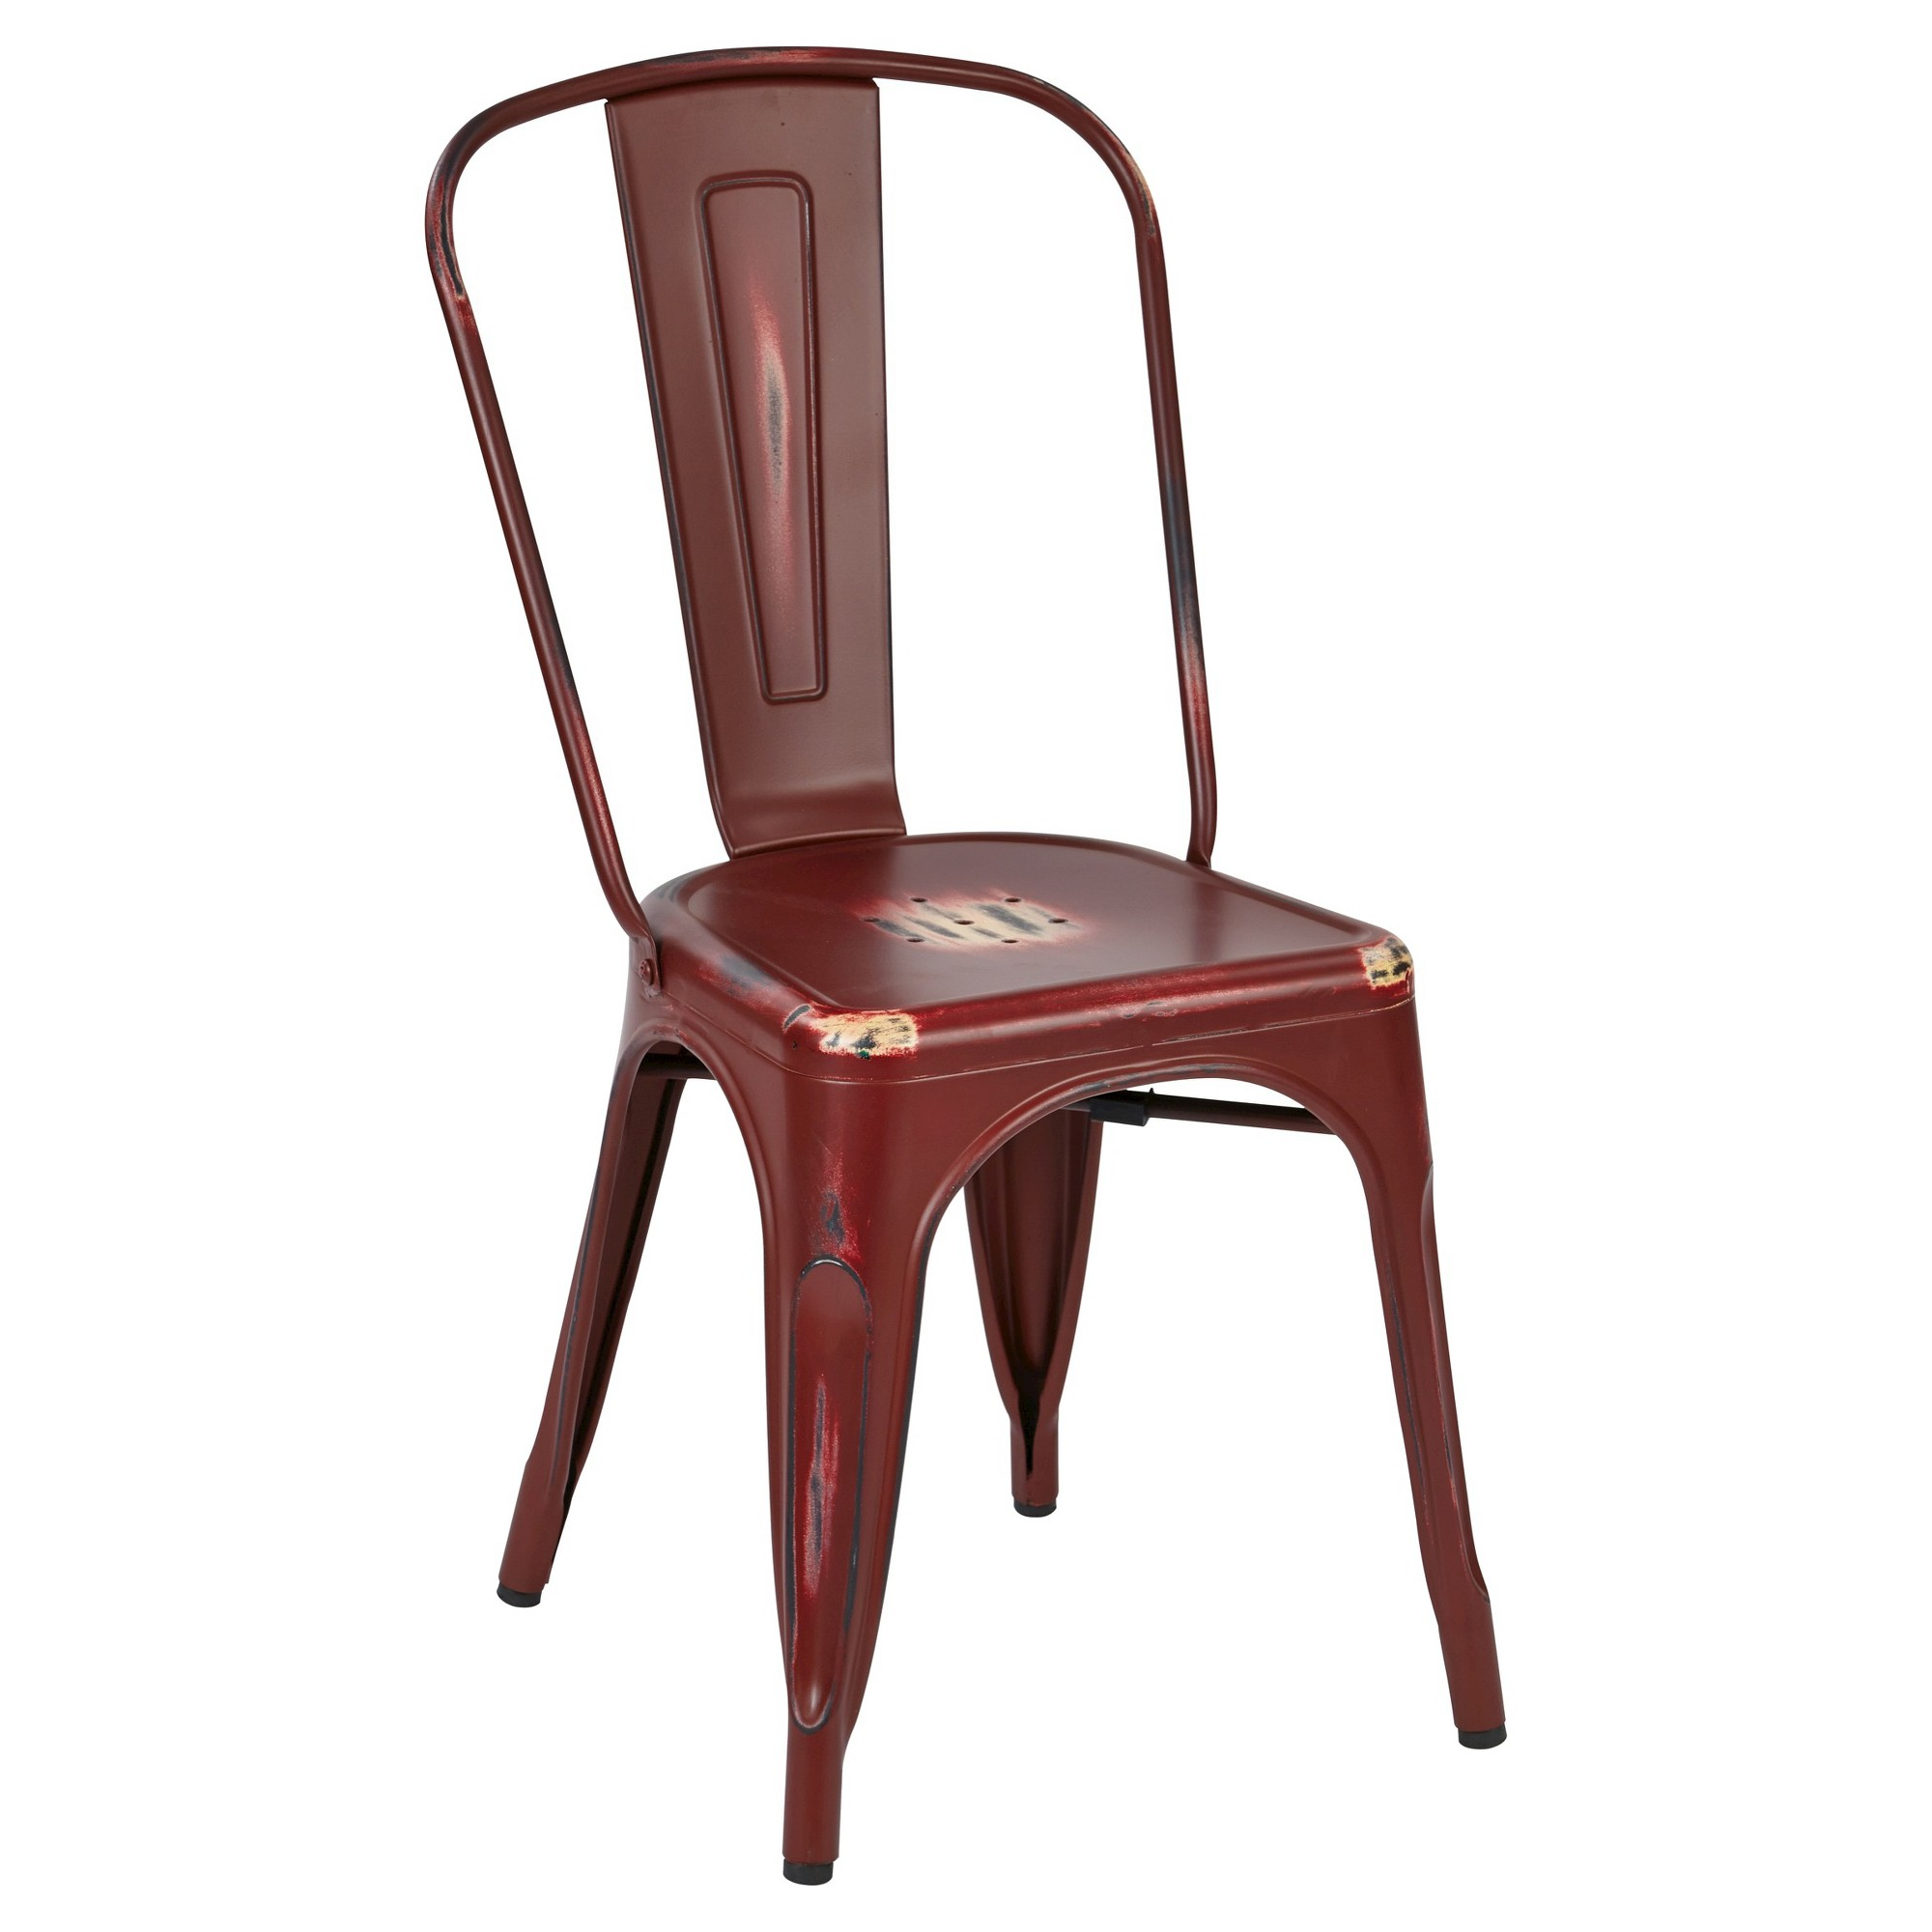 Osp Designs Bristow Armless Chair - Antique Red (Set of 2 ...